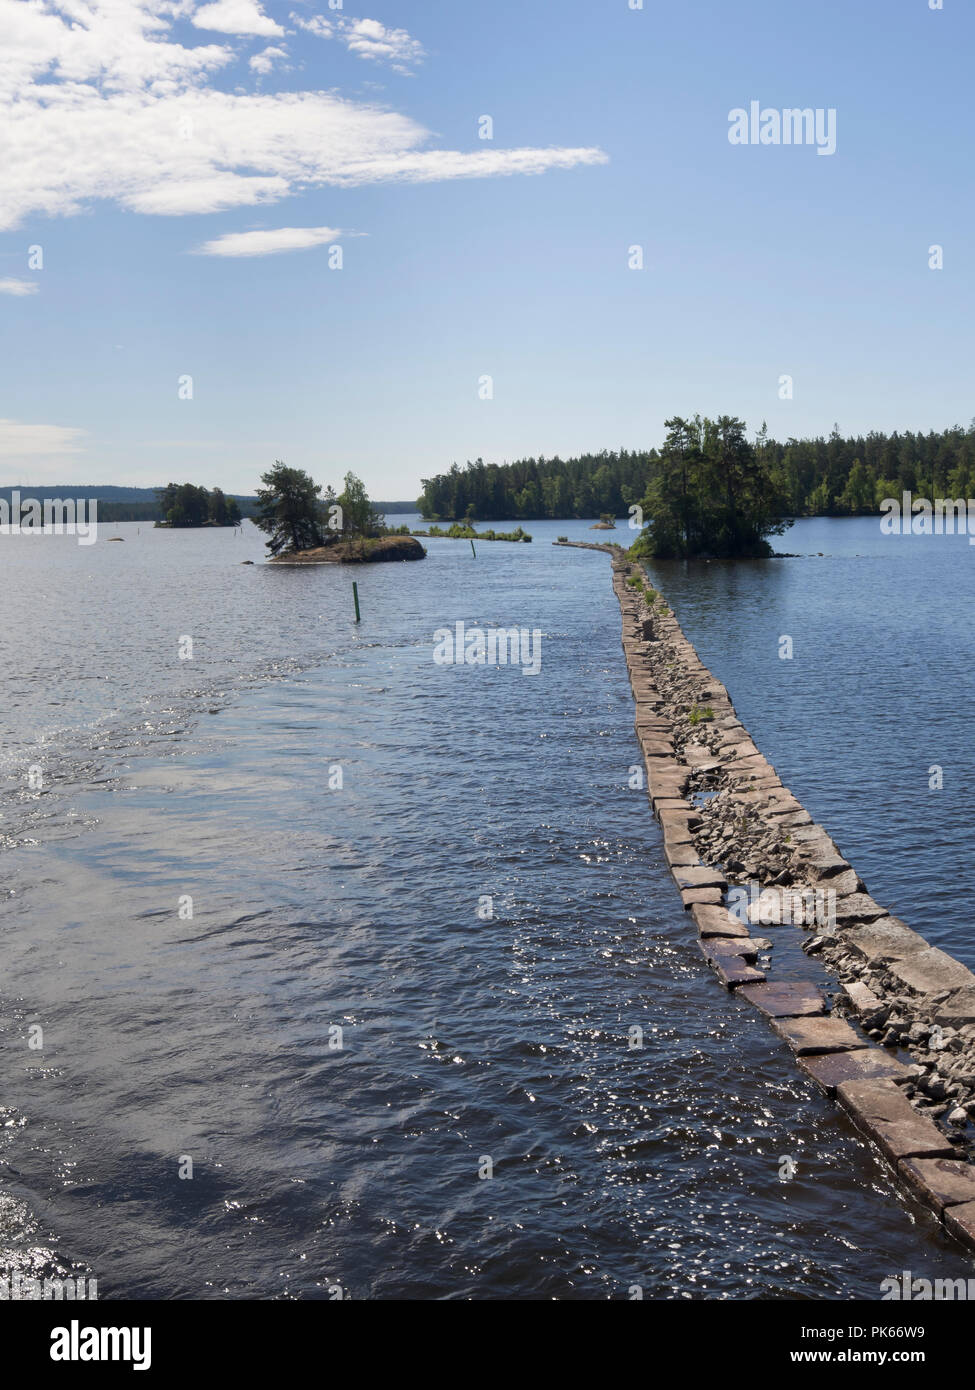 Stone wall built to guide the ships crossing the Viken lake on the Göta canal, boat cruise along an idyllic waterway in Sweden - Stock Image